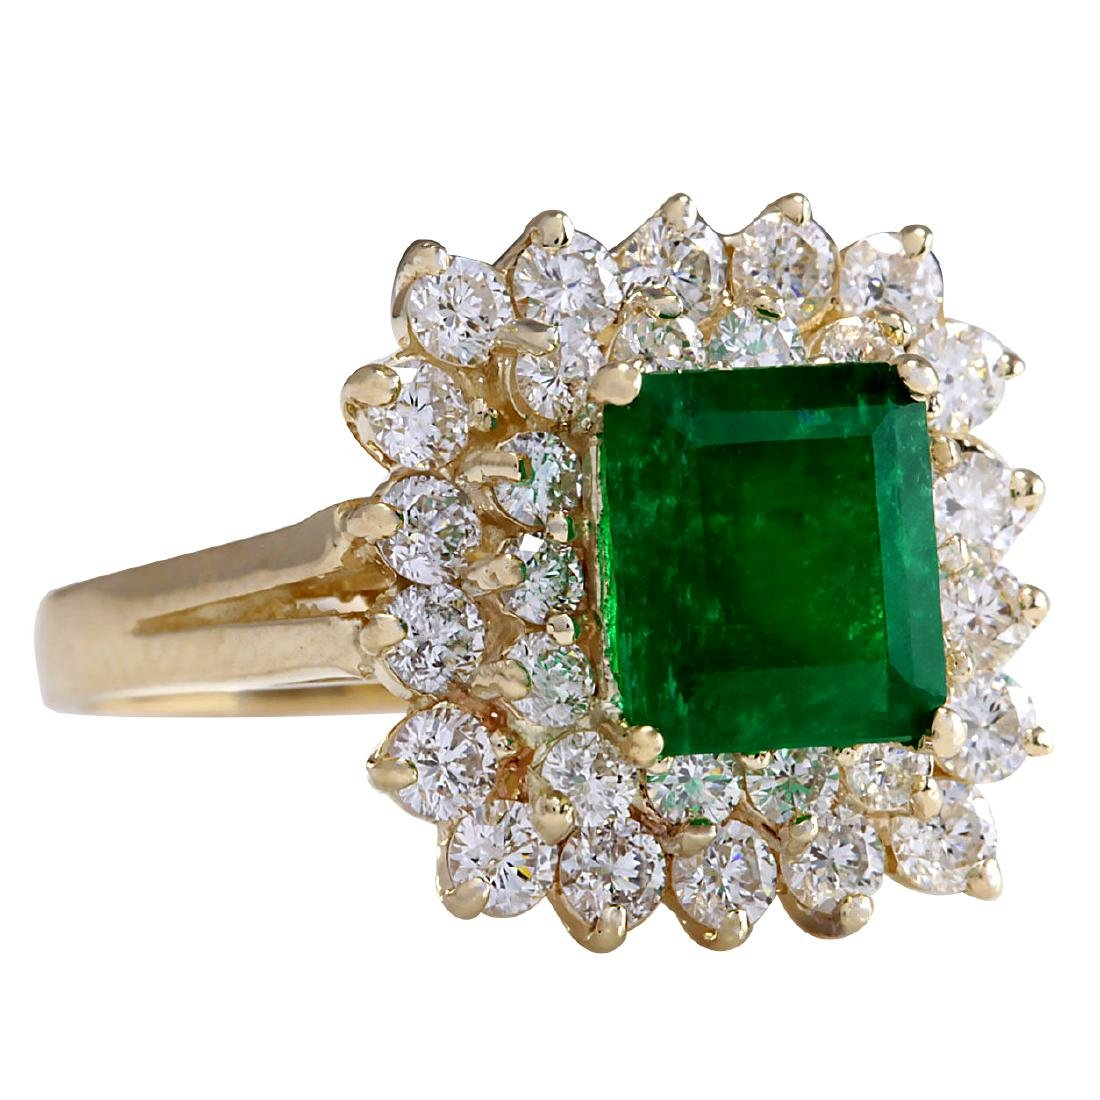 2.87CTW Natural Emerald And Diamond Ring 18K Solid - 2